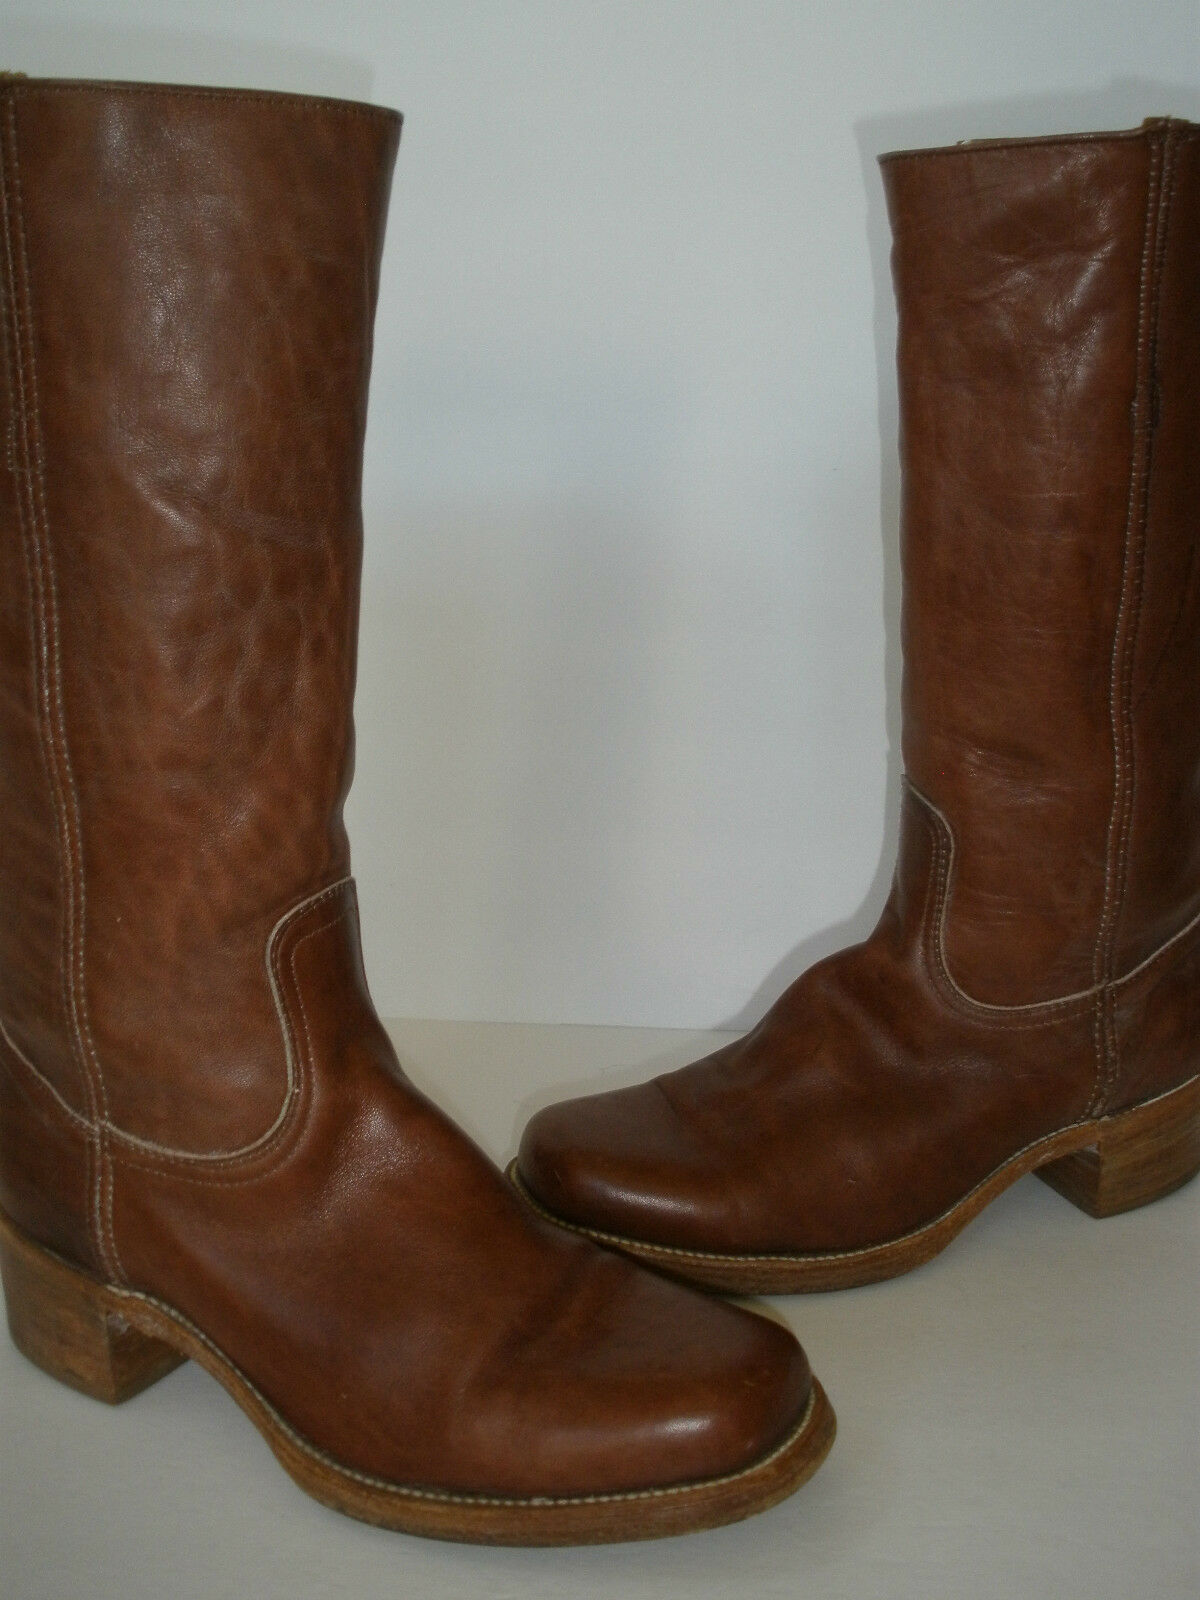 FRYE LEATHER WESTERN HOT BOOTS size US 9.5 HOT WESTERN MADE IN USA MUST HAVE WOW f3ce72